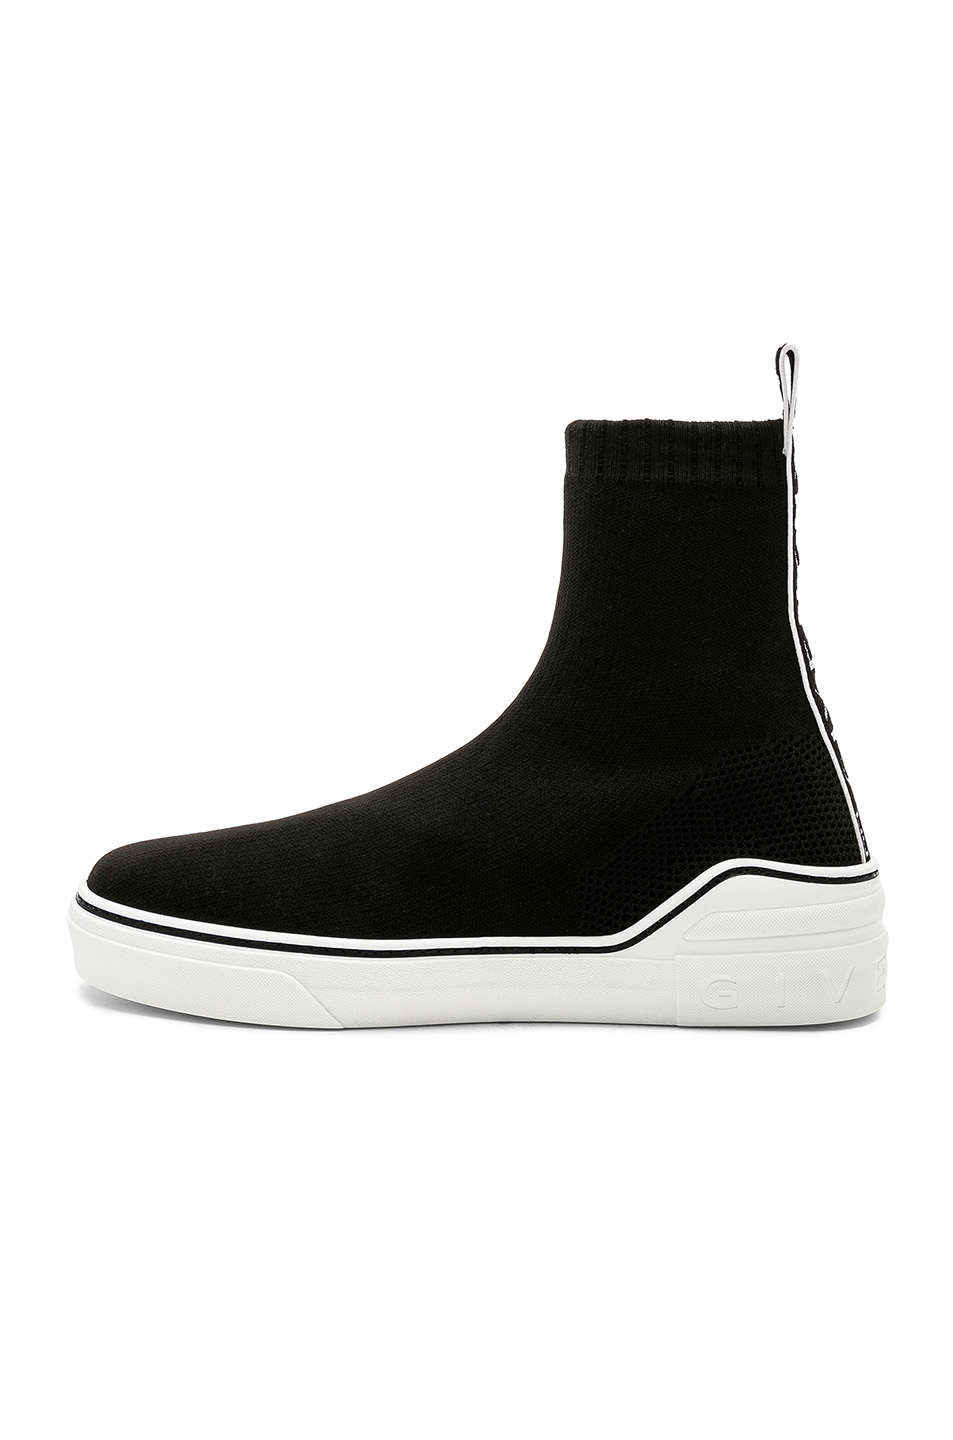 Image 5 of Givenchy George V Mid Sock Sneakers in Black & White